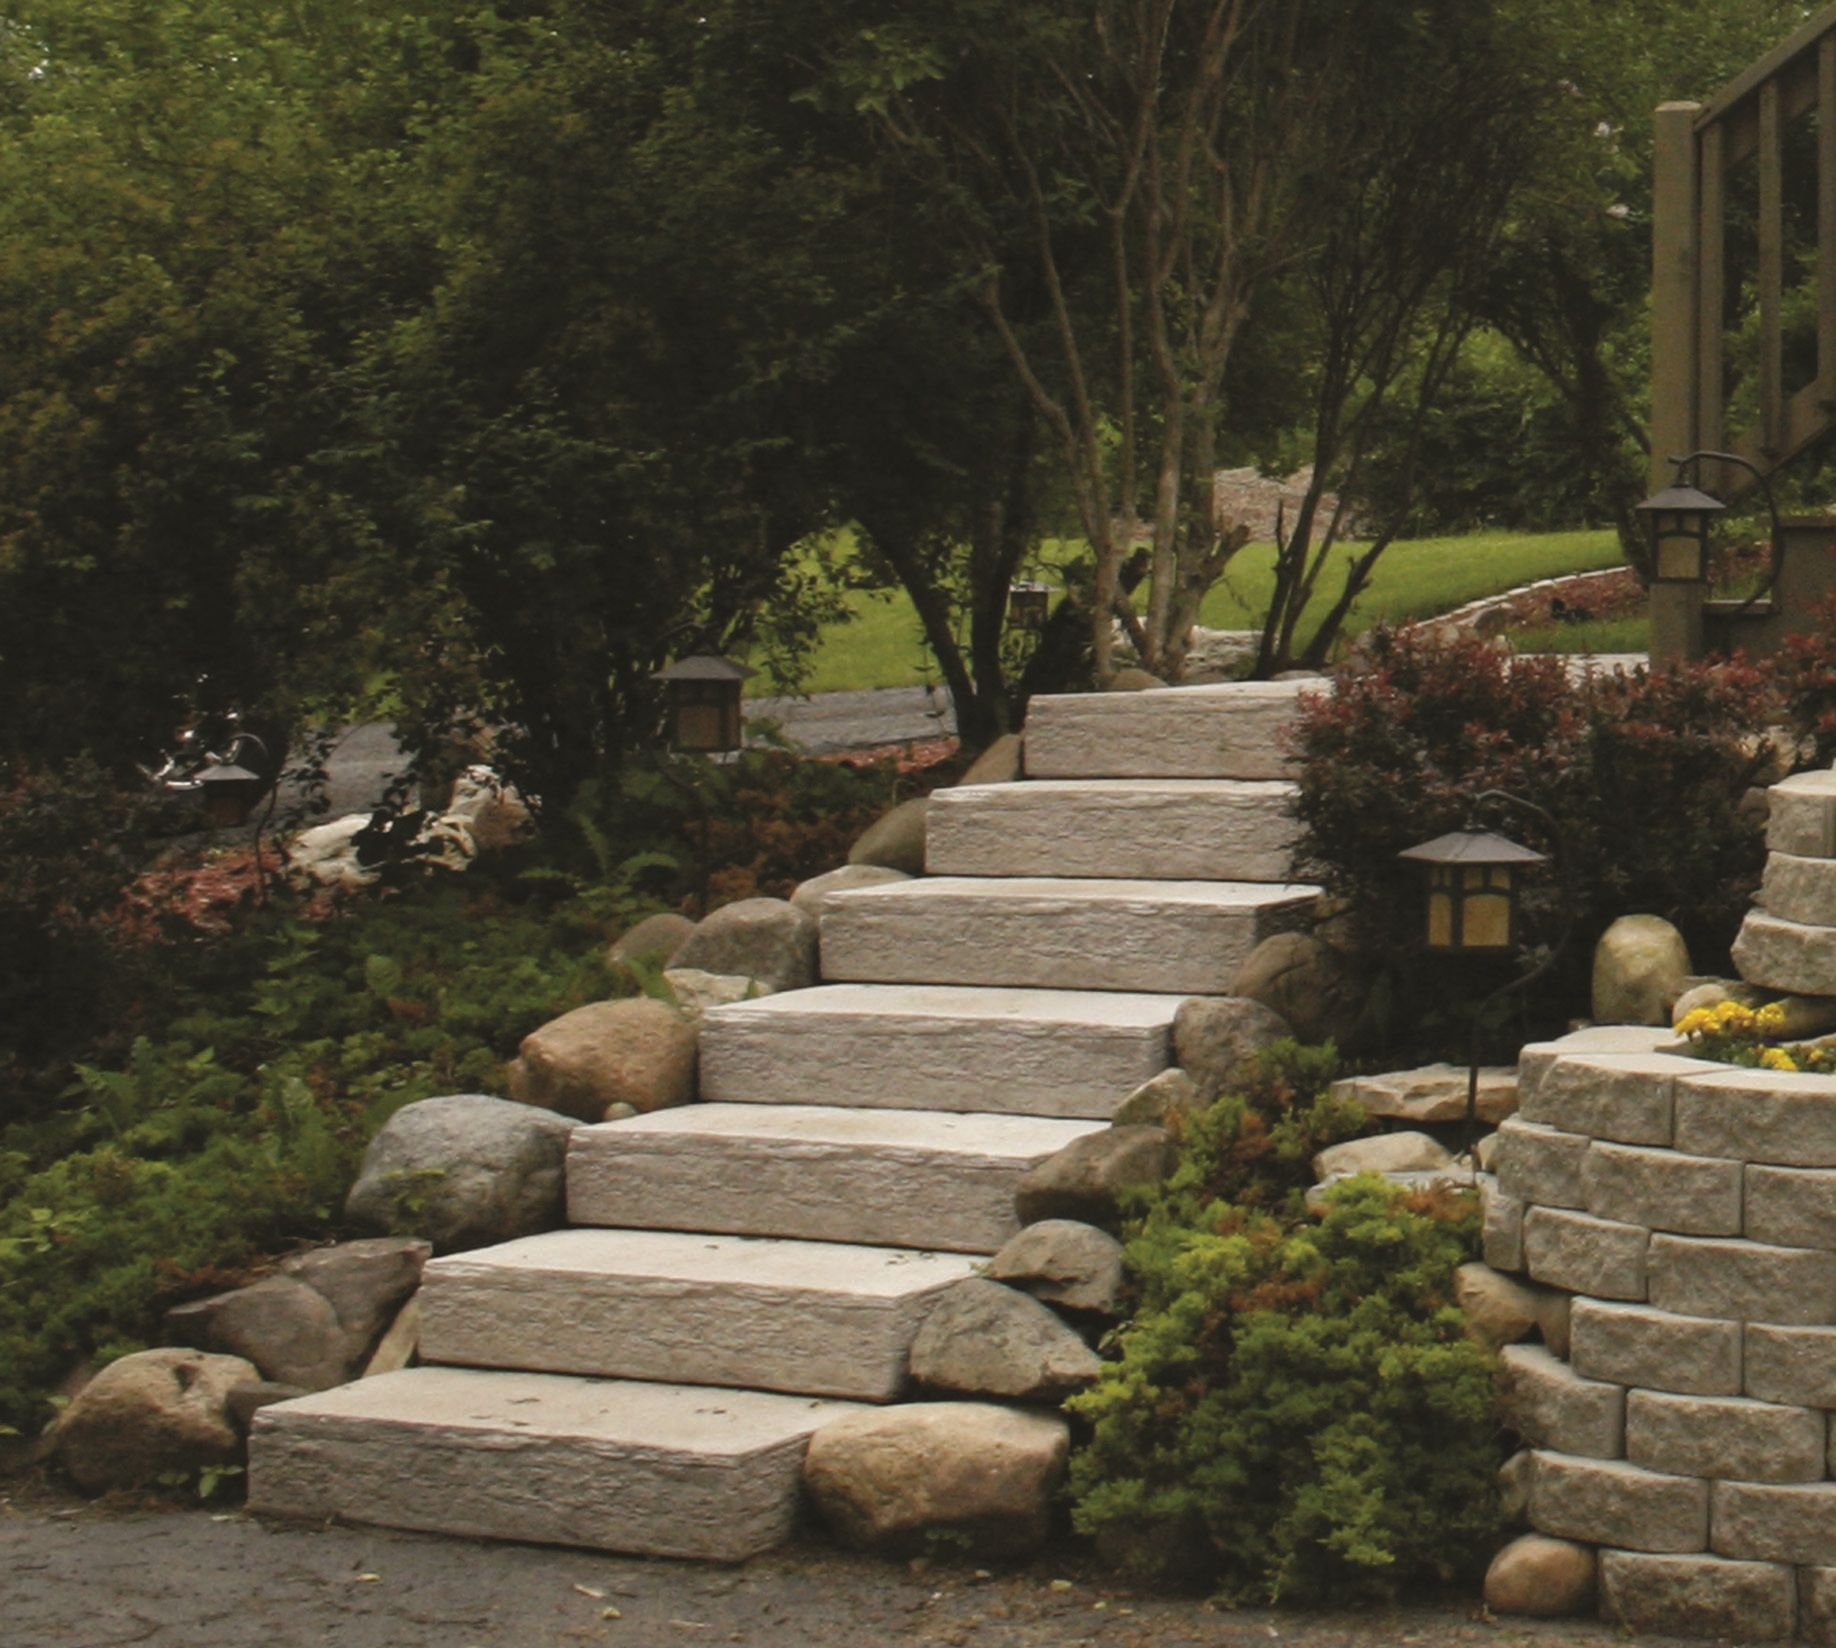 Rockstep Is The Smarter Alternative To Natural Stone Steps For The Backyard Landscaping With Large Rocks How To Build Steps Landscape Materials